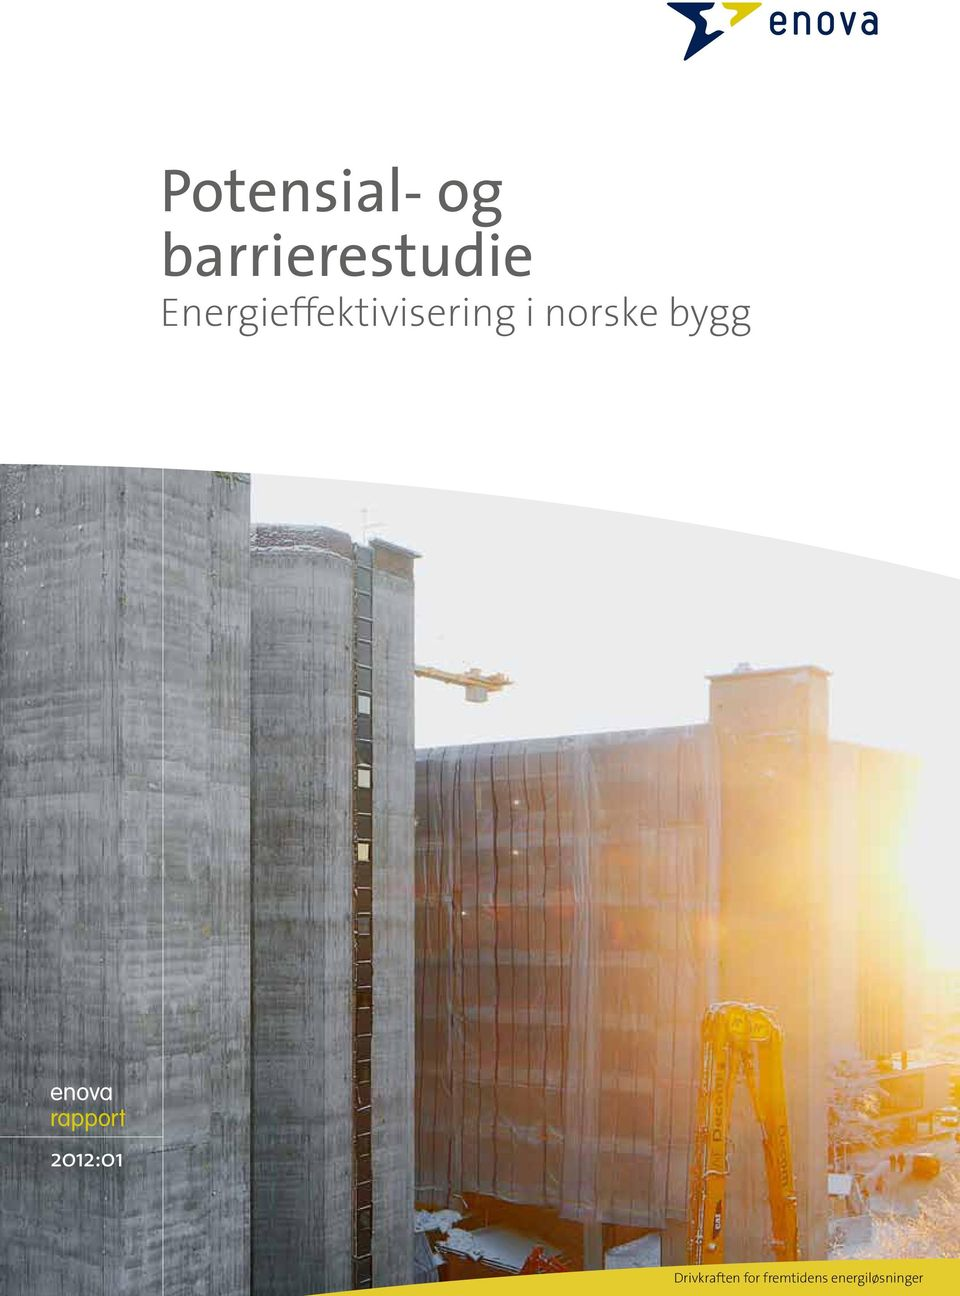 rapport 2012:01 201 Drivkraften for